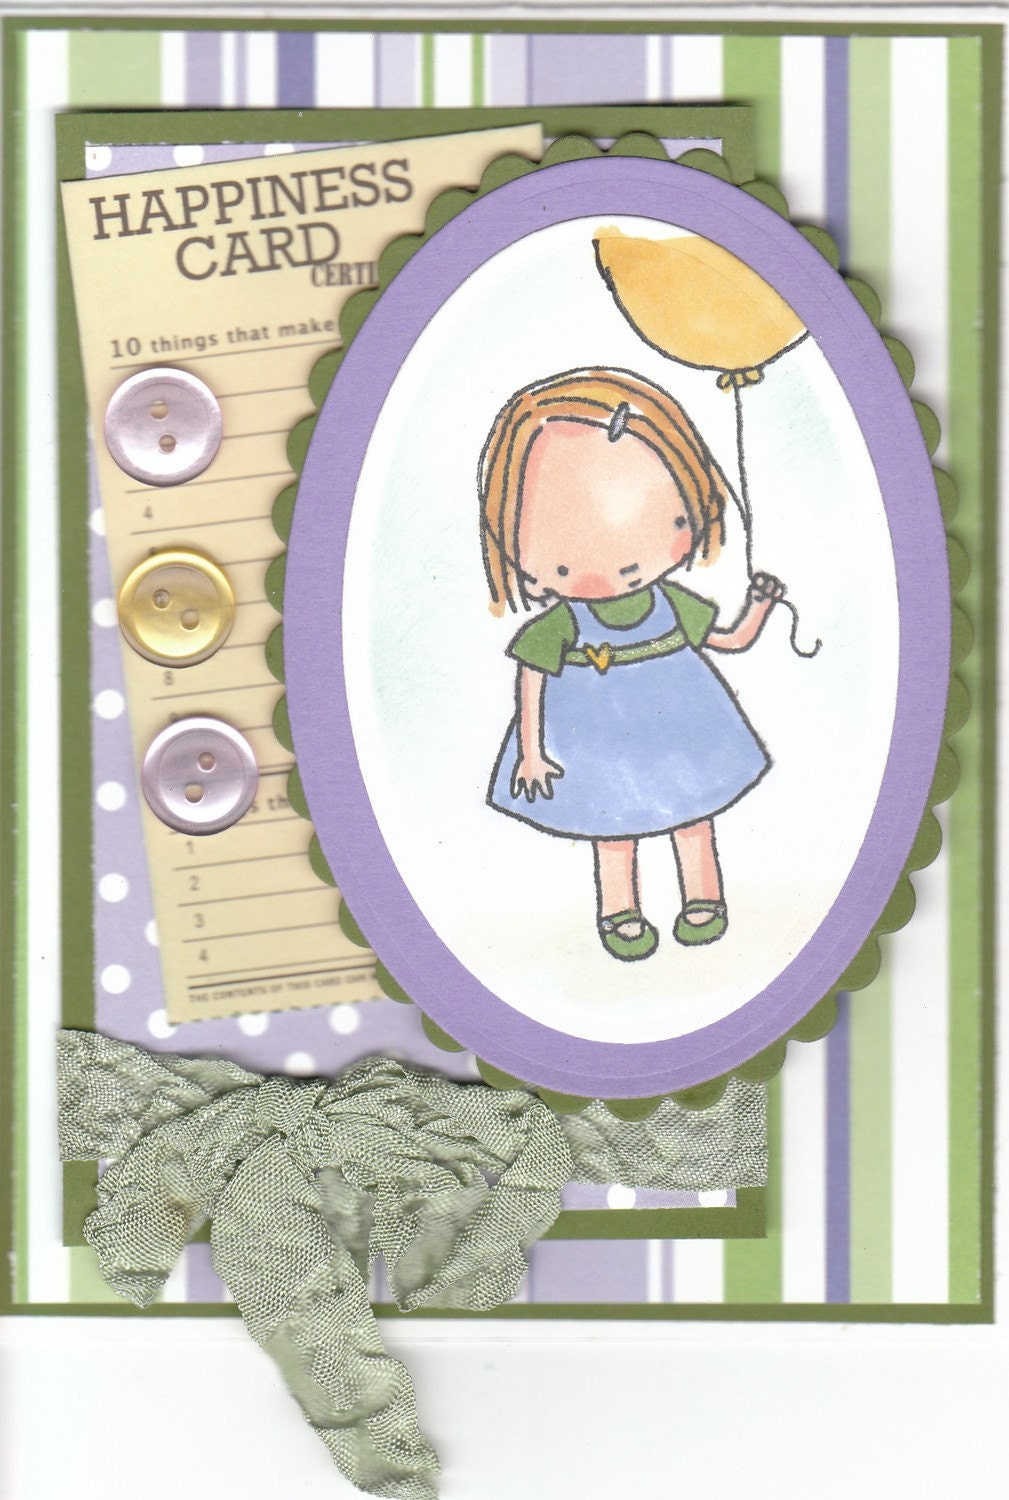 HAPPY BIRTHDAY WISHES FROM SWEET INNOCENCE BALLOON GIRL HANDMADE CARD